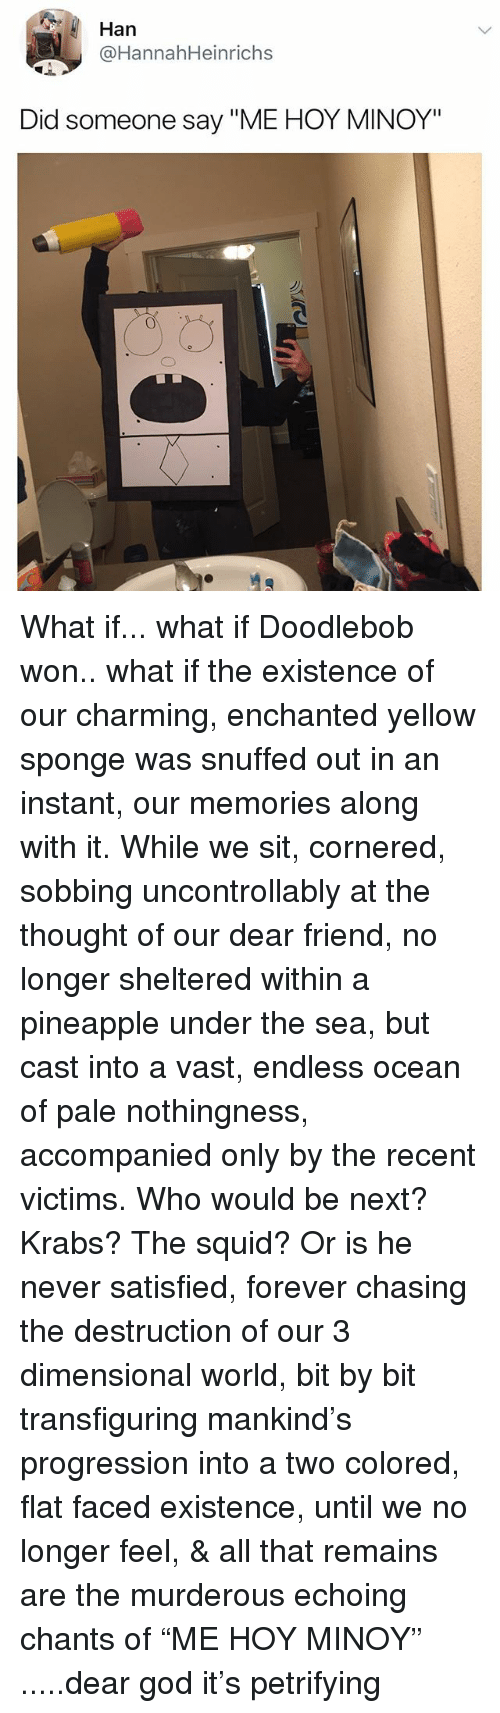 "DoodleBob, God, and Forever: Han  @HannahHeinrichs  Did someone say ""ME HOY MINOY"" What if... what if Doodlebob won.. what if the existence of our charming, enchanted yellow sponge was snuffed out in an instant, our memories along with it. While we sit, cornered, sobbing uncontrollably at the thought of our dear friend, no longer sheltered within a pineapple under the sea, but cast into a vast, endless ocean of pale nothingness, accompanied only by the recent victims. Who would be next? Krabs? The squid? Or is he never satisfied, forever chasing the destruction of our 3 dimensional world, bit by bit transfiguring mankind's progression into a two colored, flat faced existence, until we no longer feel, & all that remains are the murderous echoing chants of ""ME HOY MINOY"" .....dear god it's petrifying"